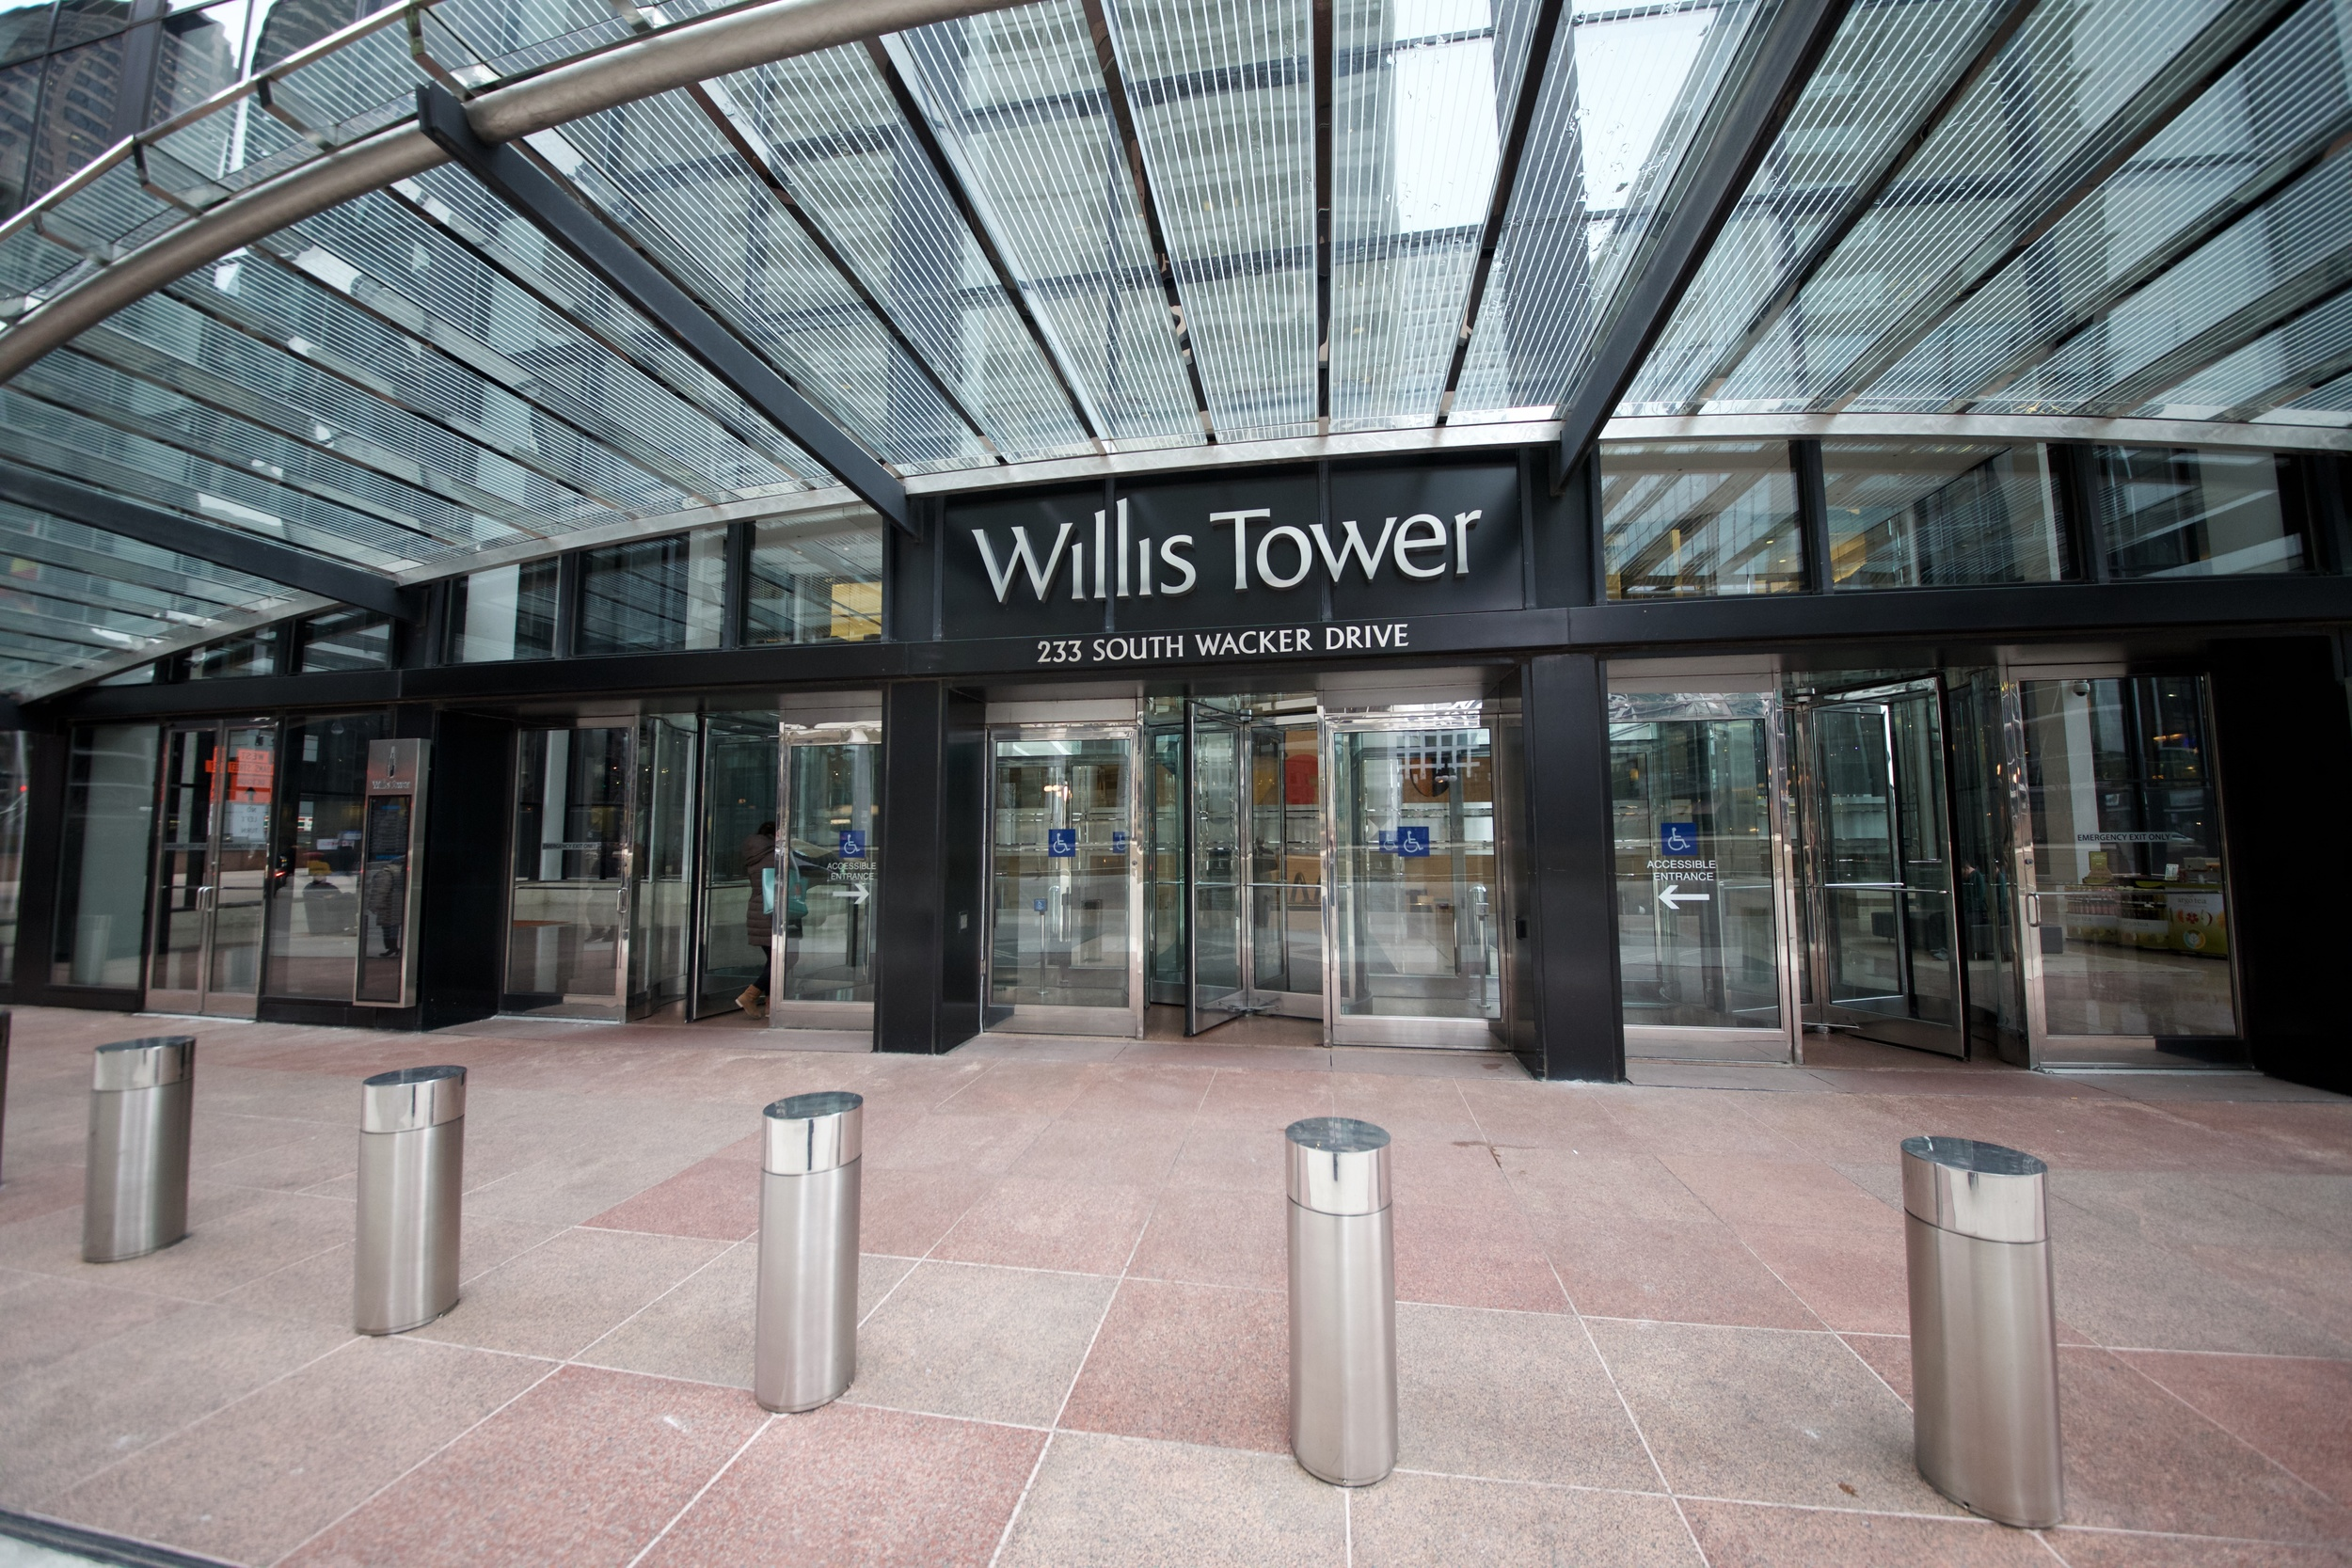 Welcome to Willis Tower